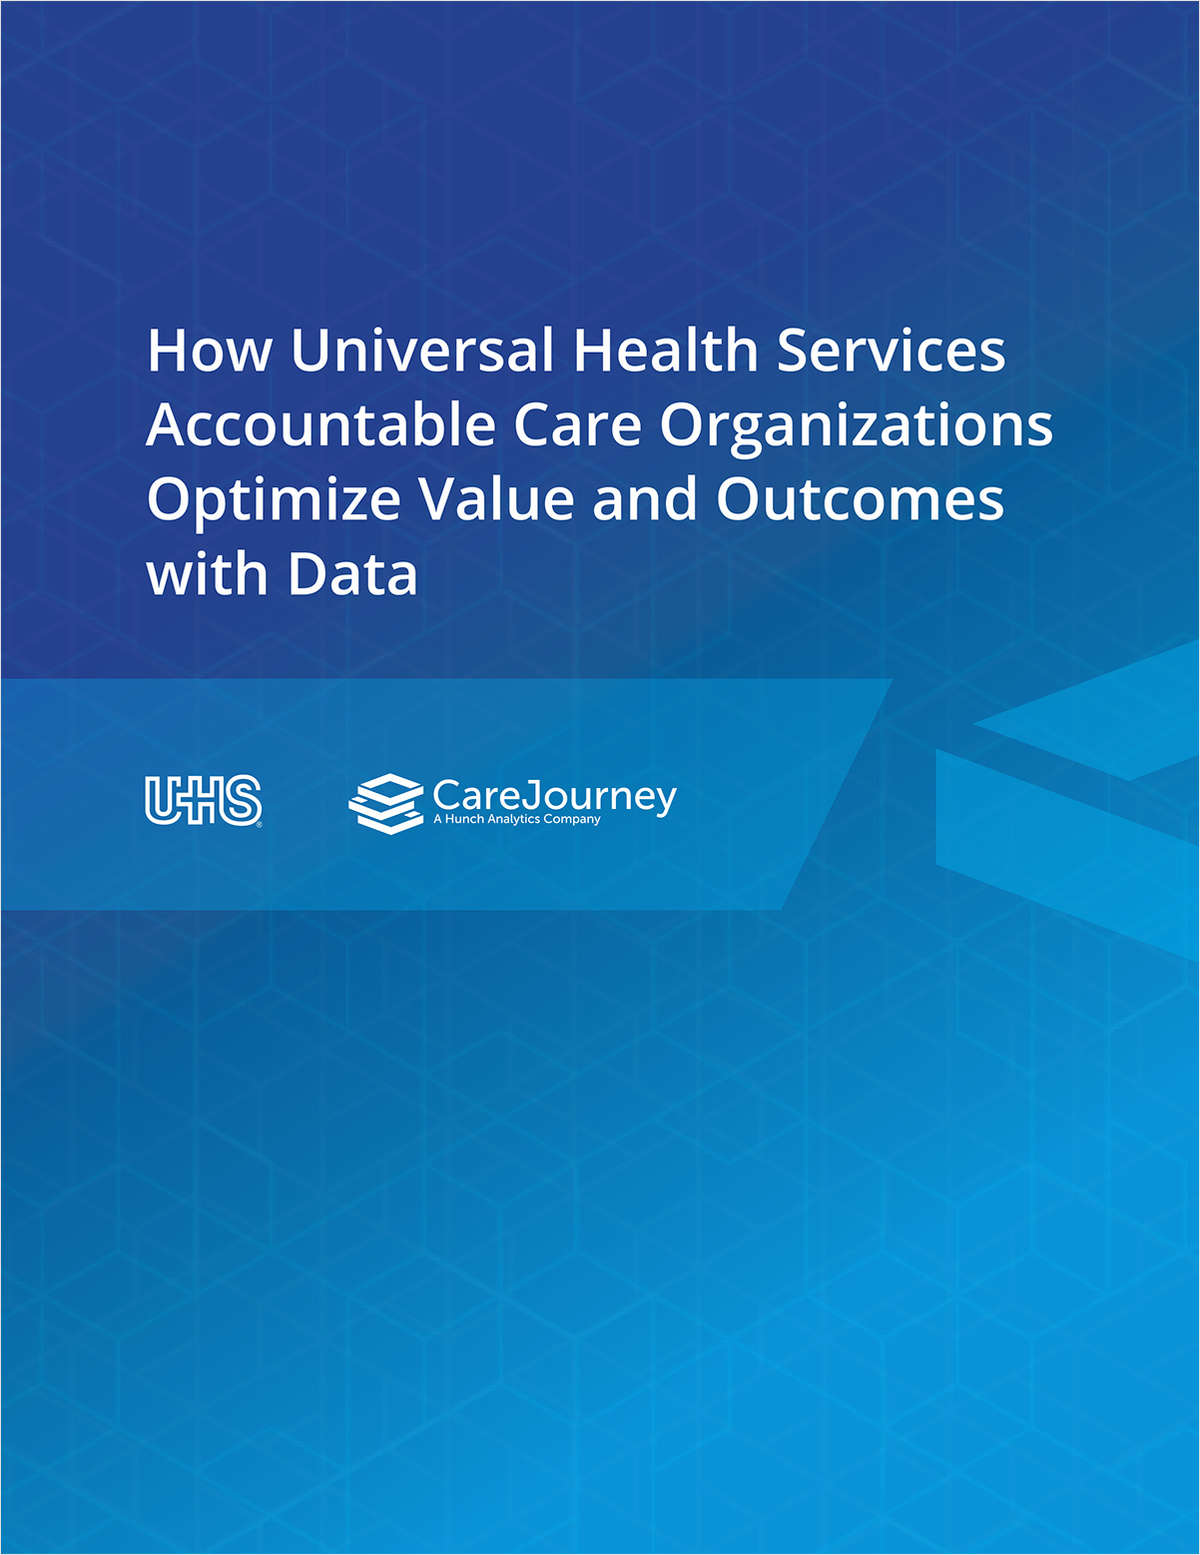 How Universal Health Services (UHS) Accountable Care Organizations Optimize Value and Outcomes with Data